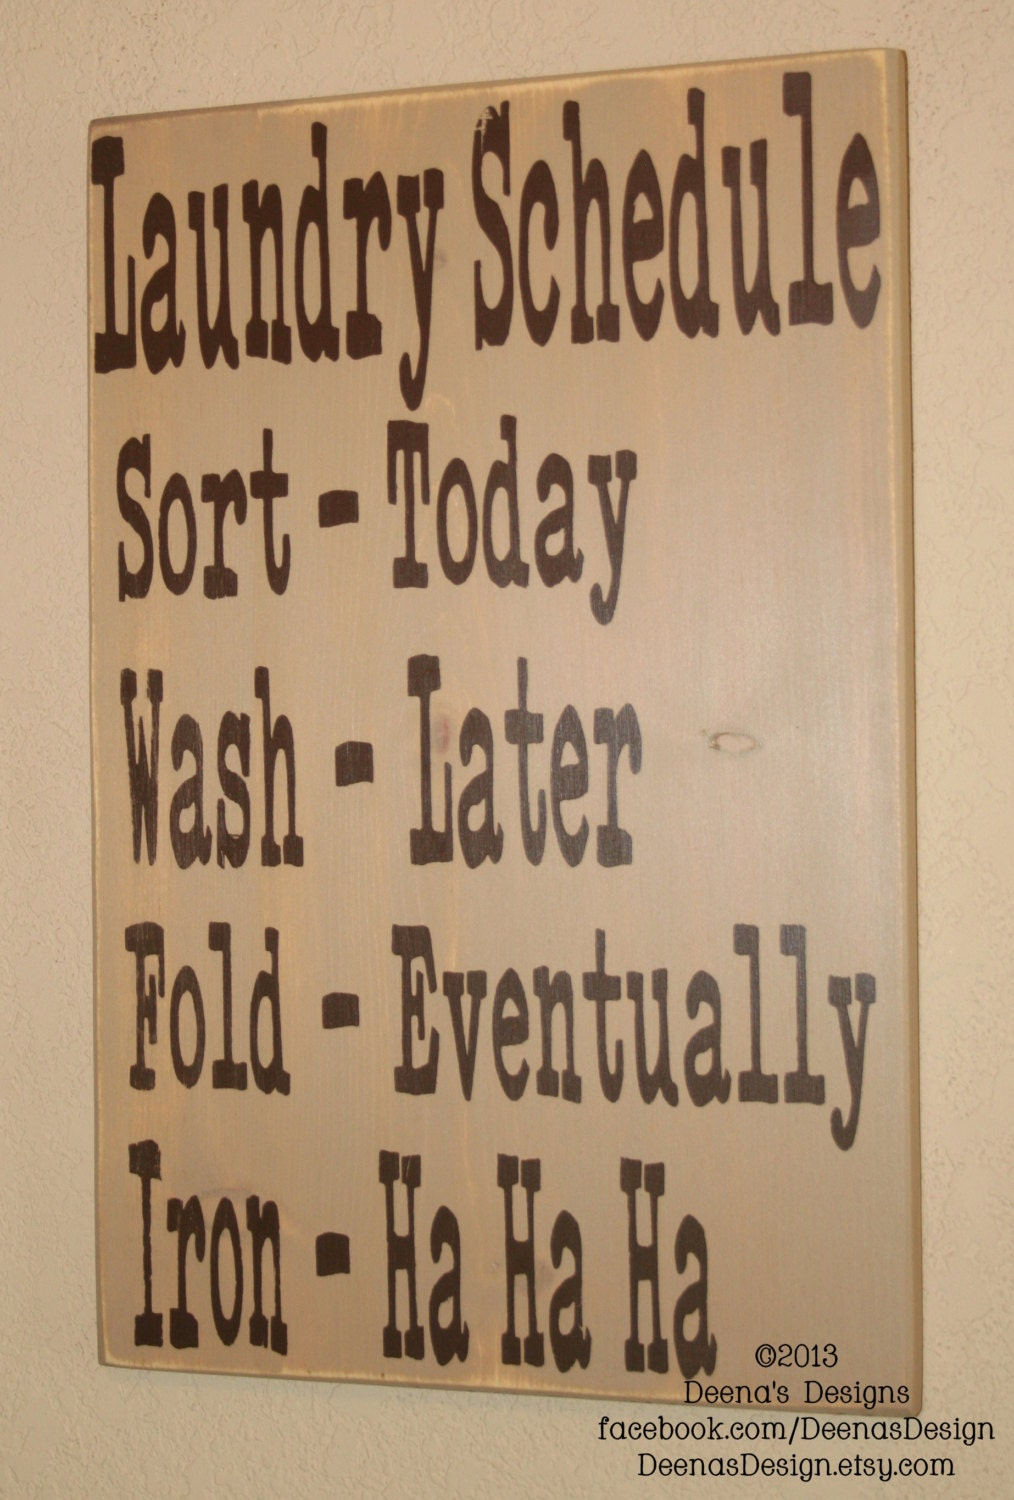 laundry schedule laundry room decor laundry sign by